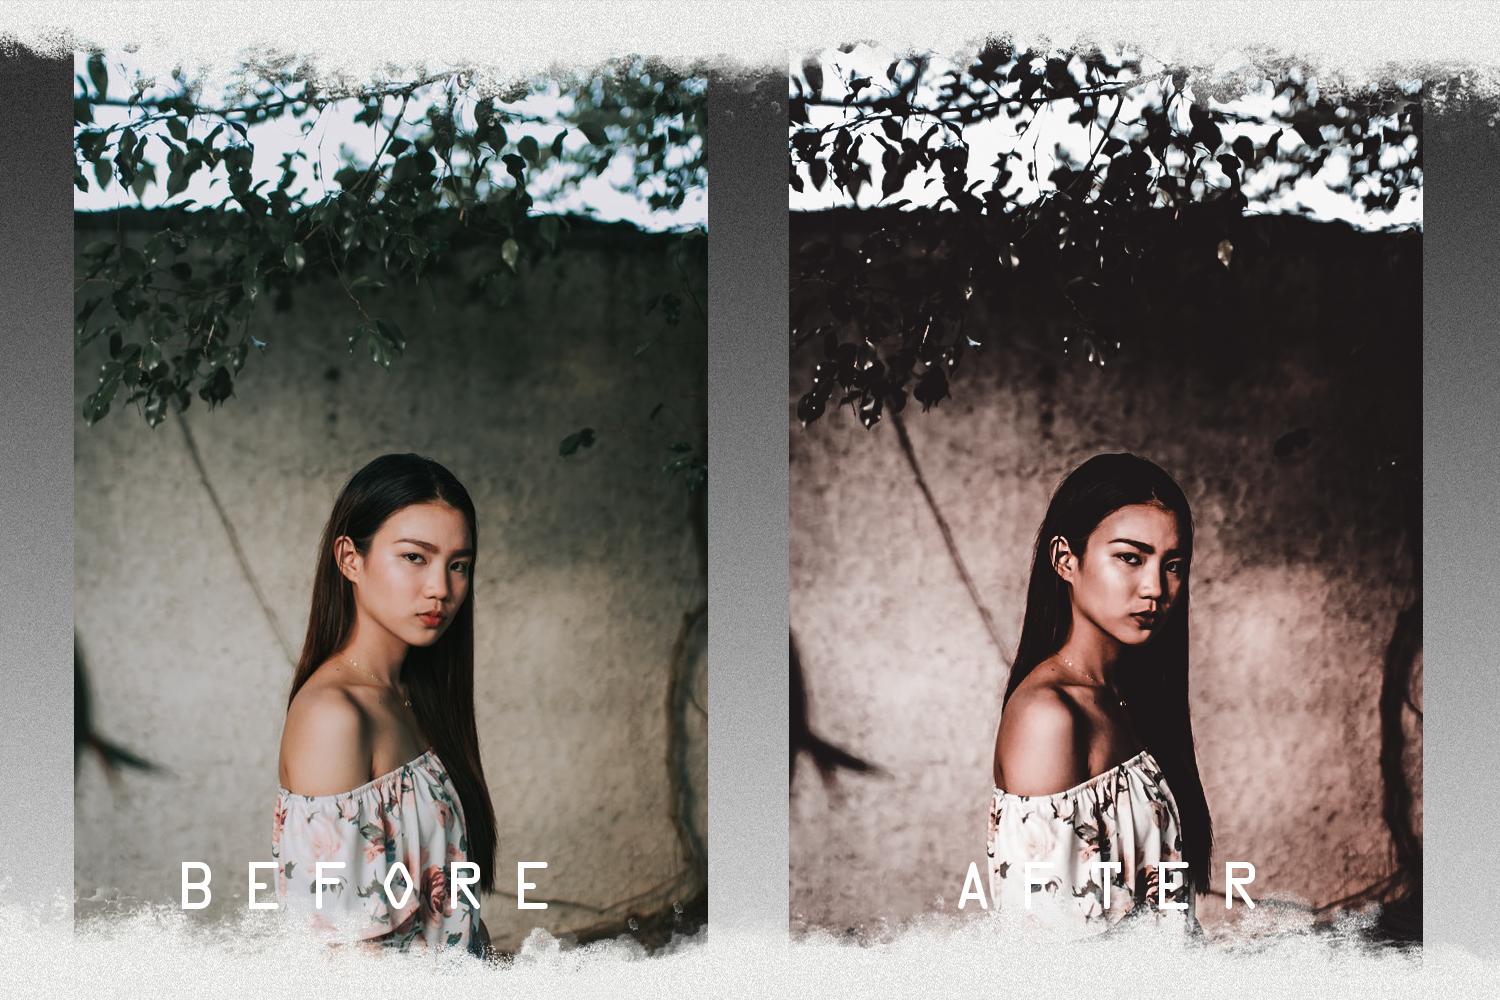 Nude presets for mobile and PC photo filter, photo effect example image 4